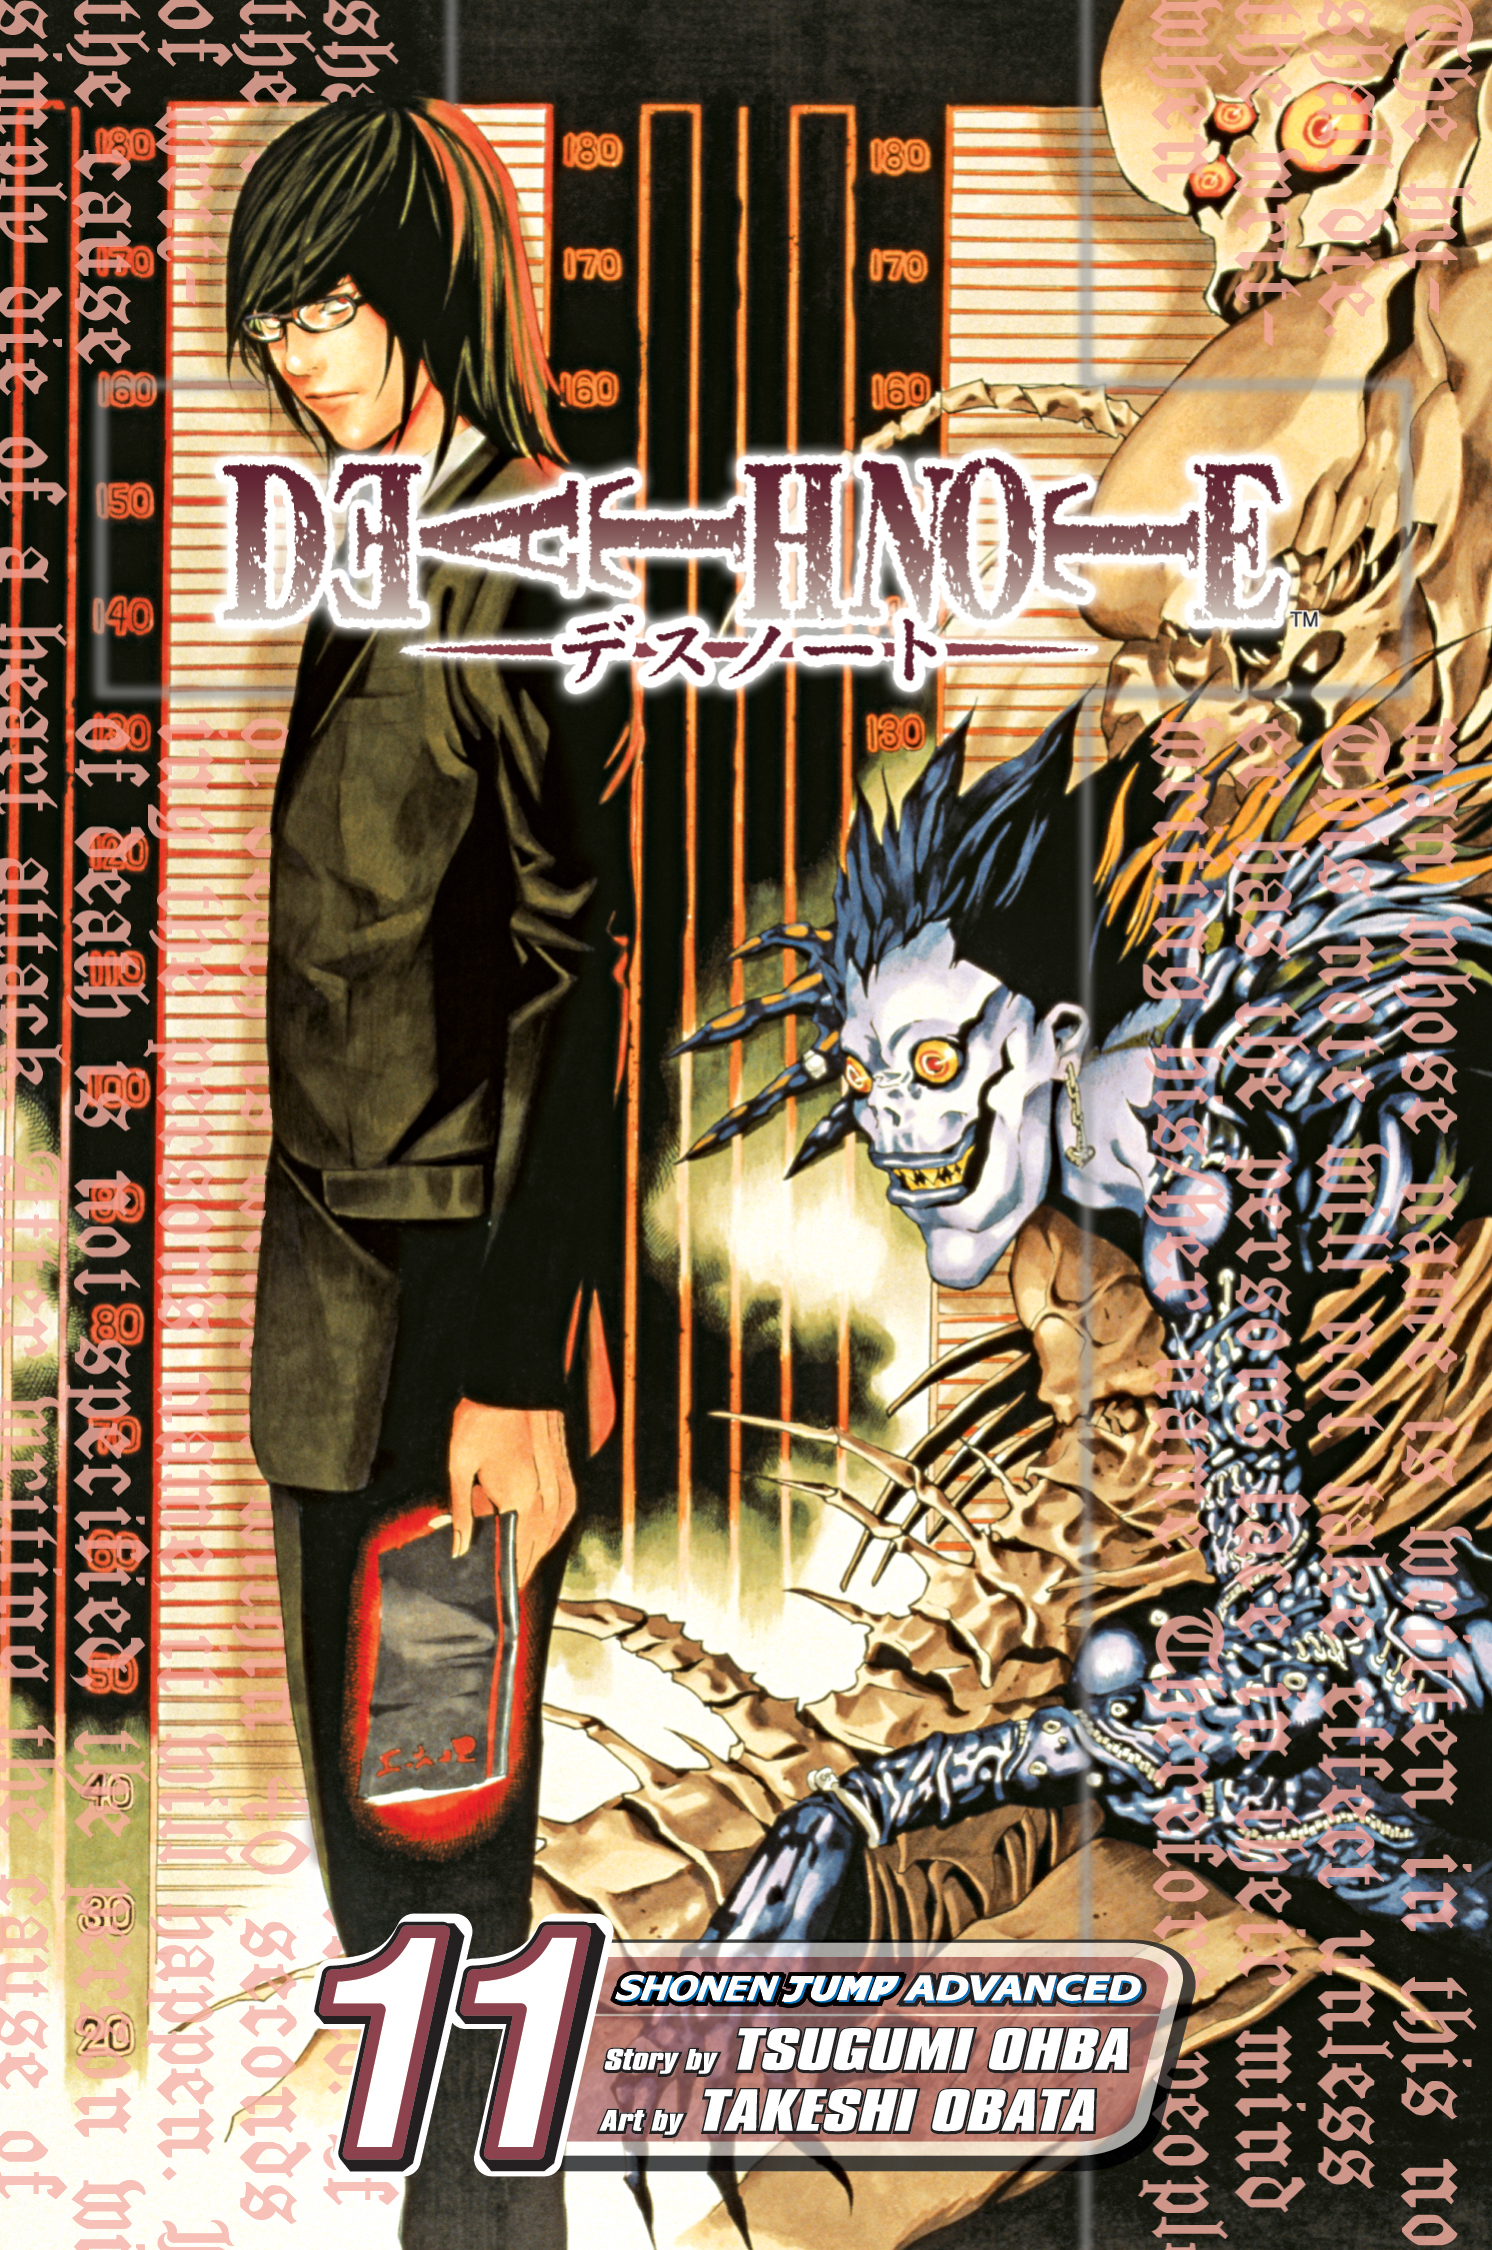 death note vol 11 book by tsugumi ohba taskeshi obata official publisher page simon. Black Bedroom Furniture Sets. Home Design Ideas